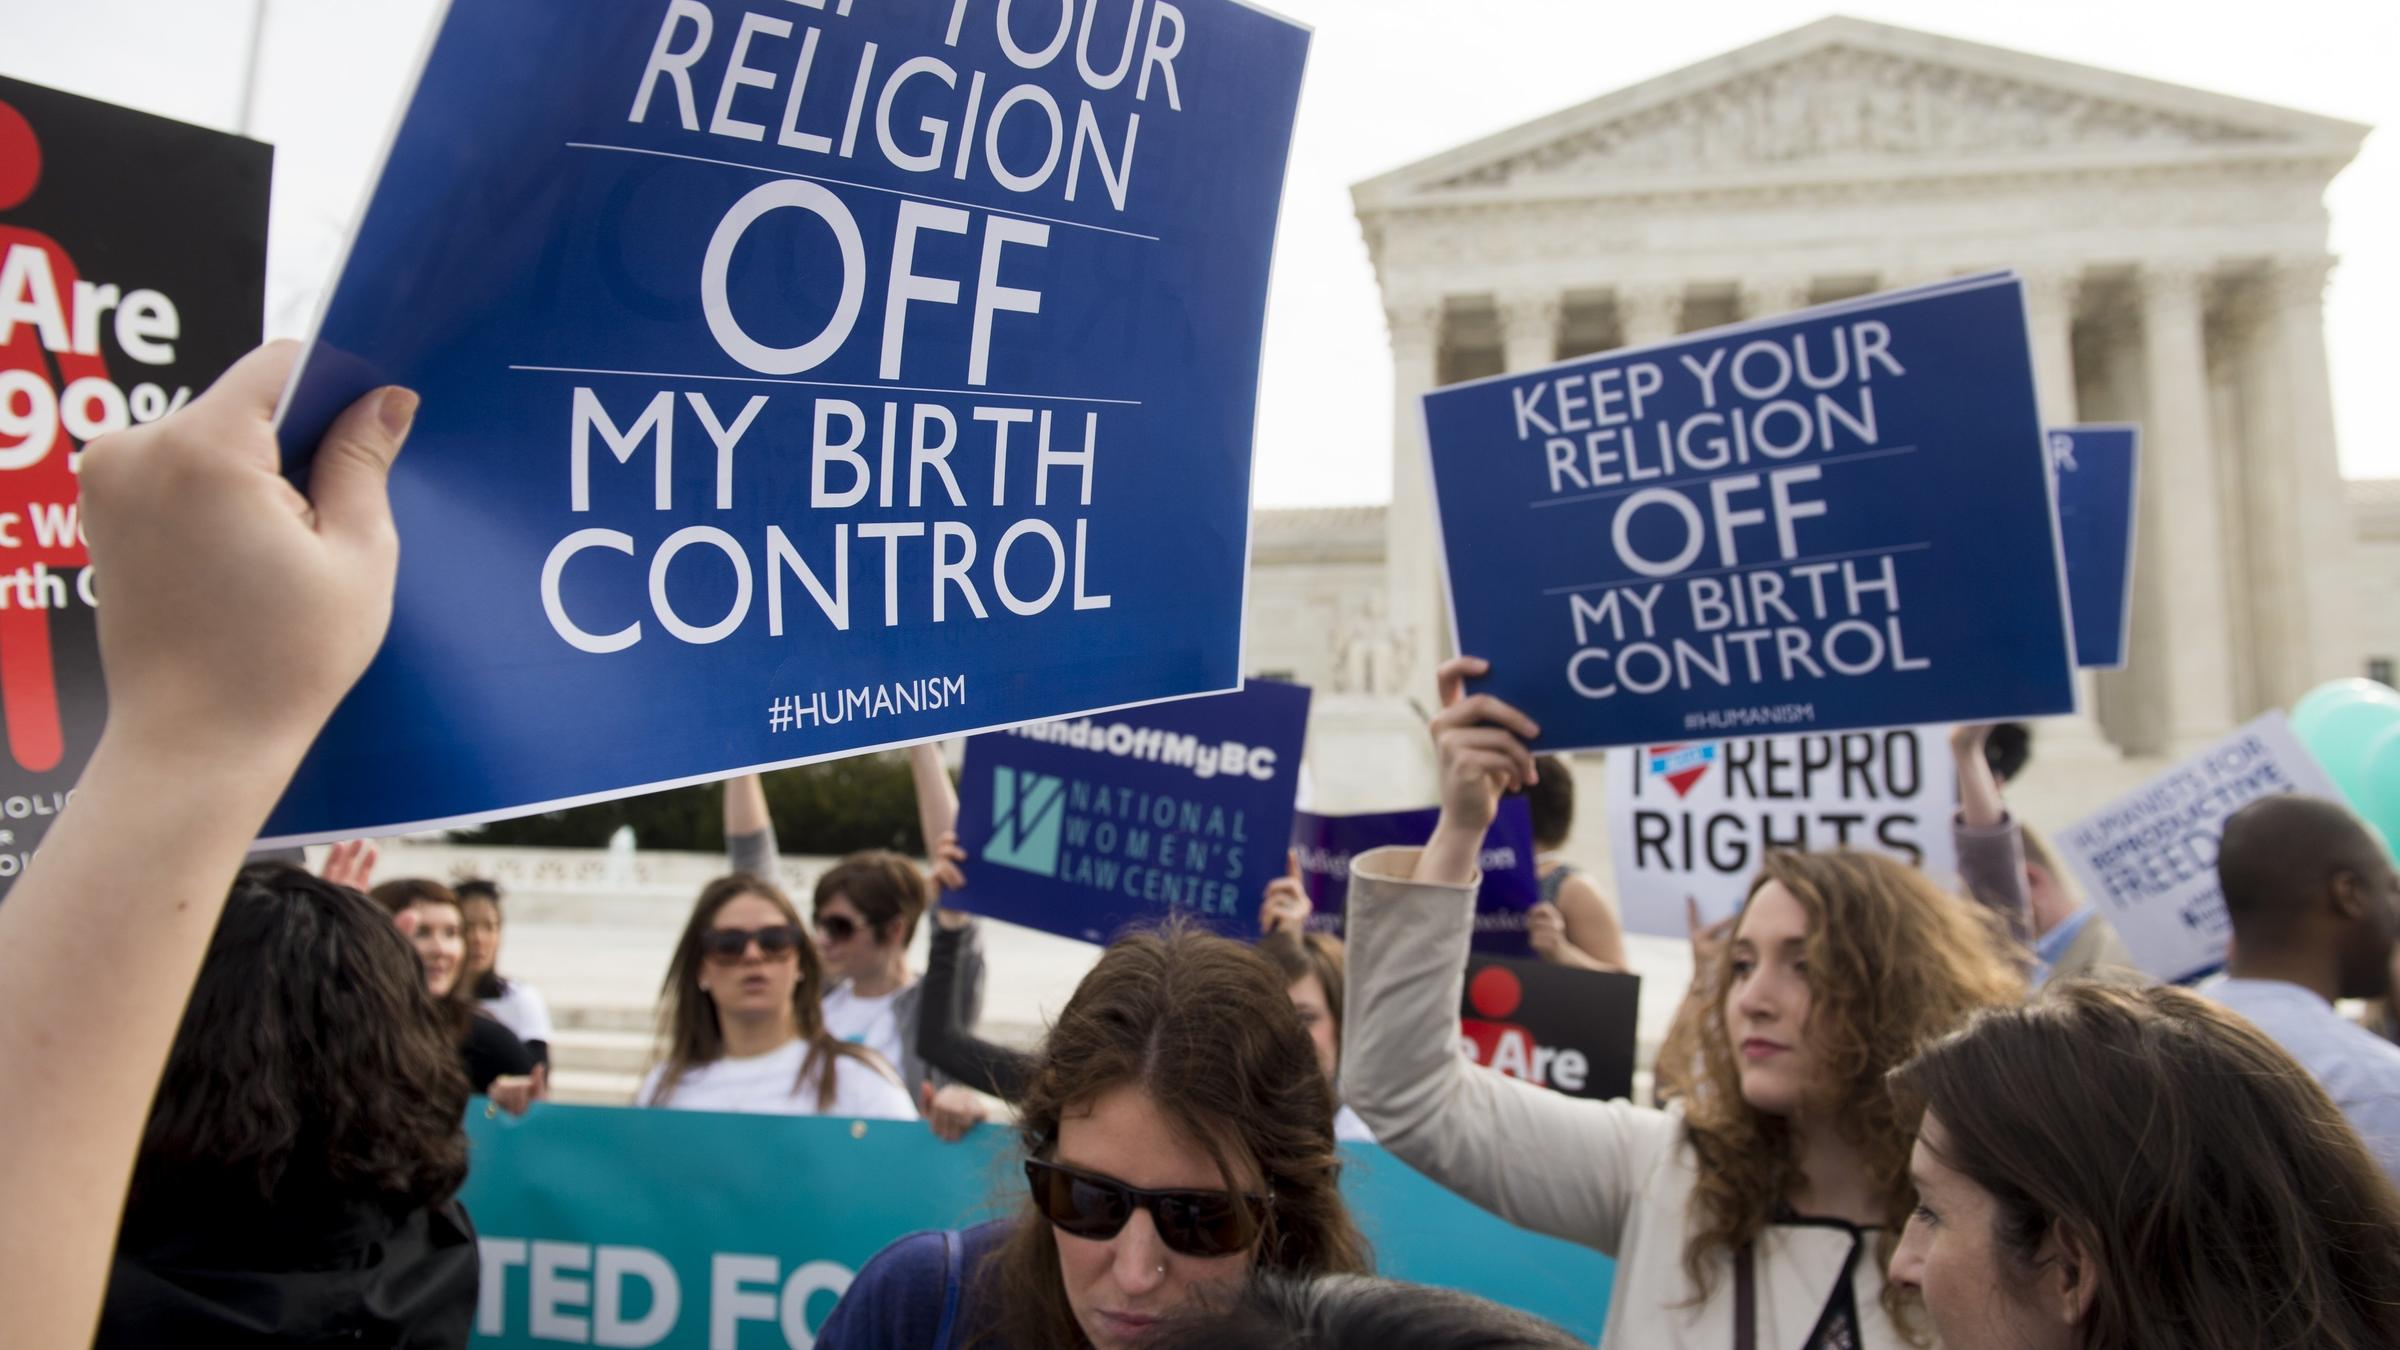 Massachusetts Republican Gov. Signs Law Mandating Birth Control Coverage